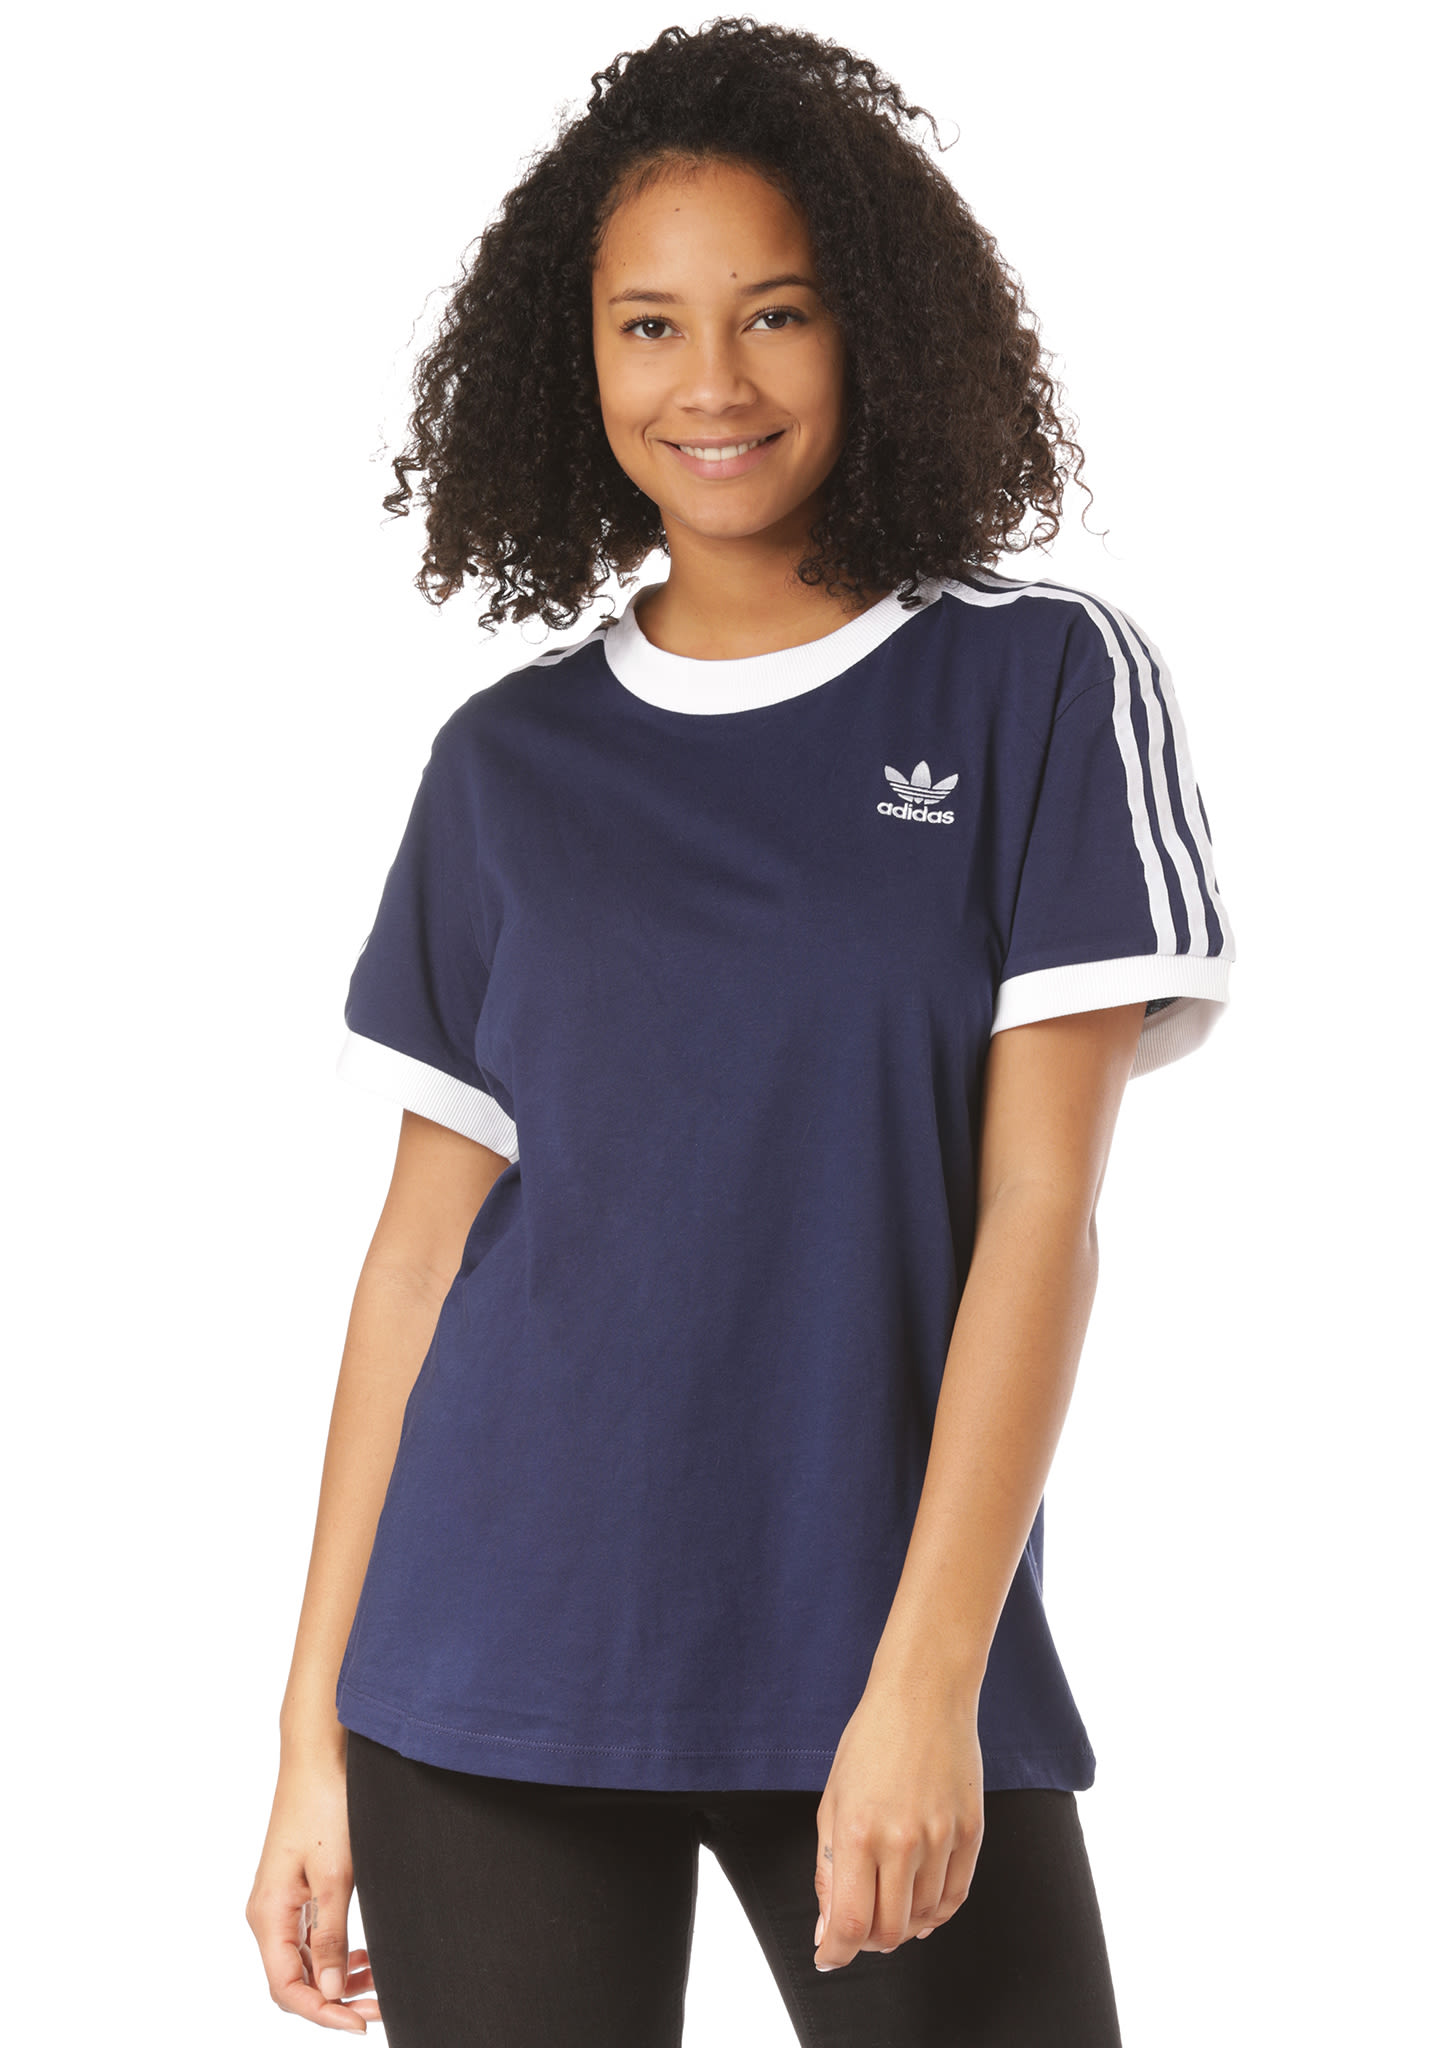 adidas Originals 3 Stripes - T-Shirt für Damen - Blau